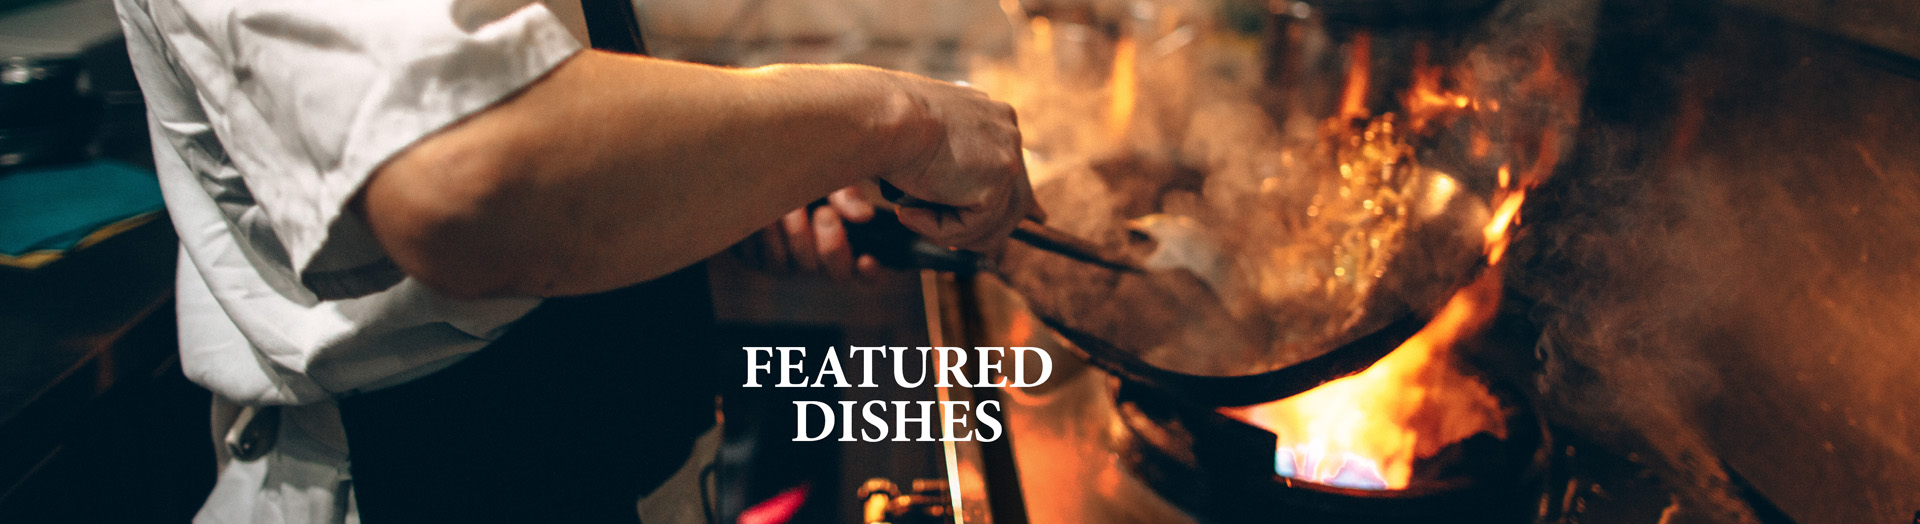 Duke of Normandie Hotel Guernsey Featured Dishes